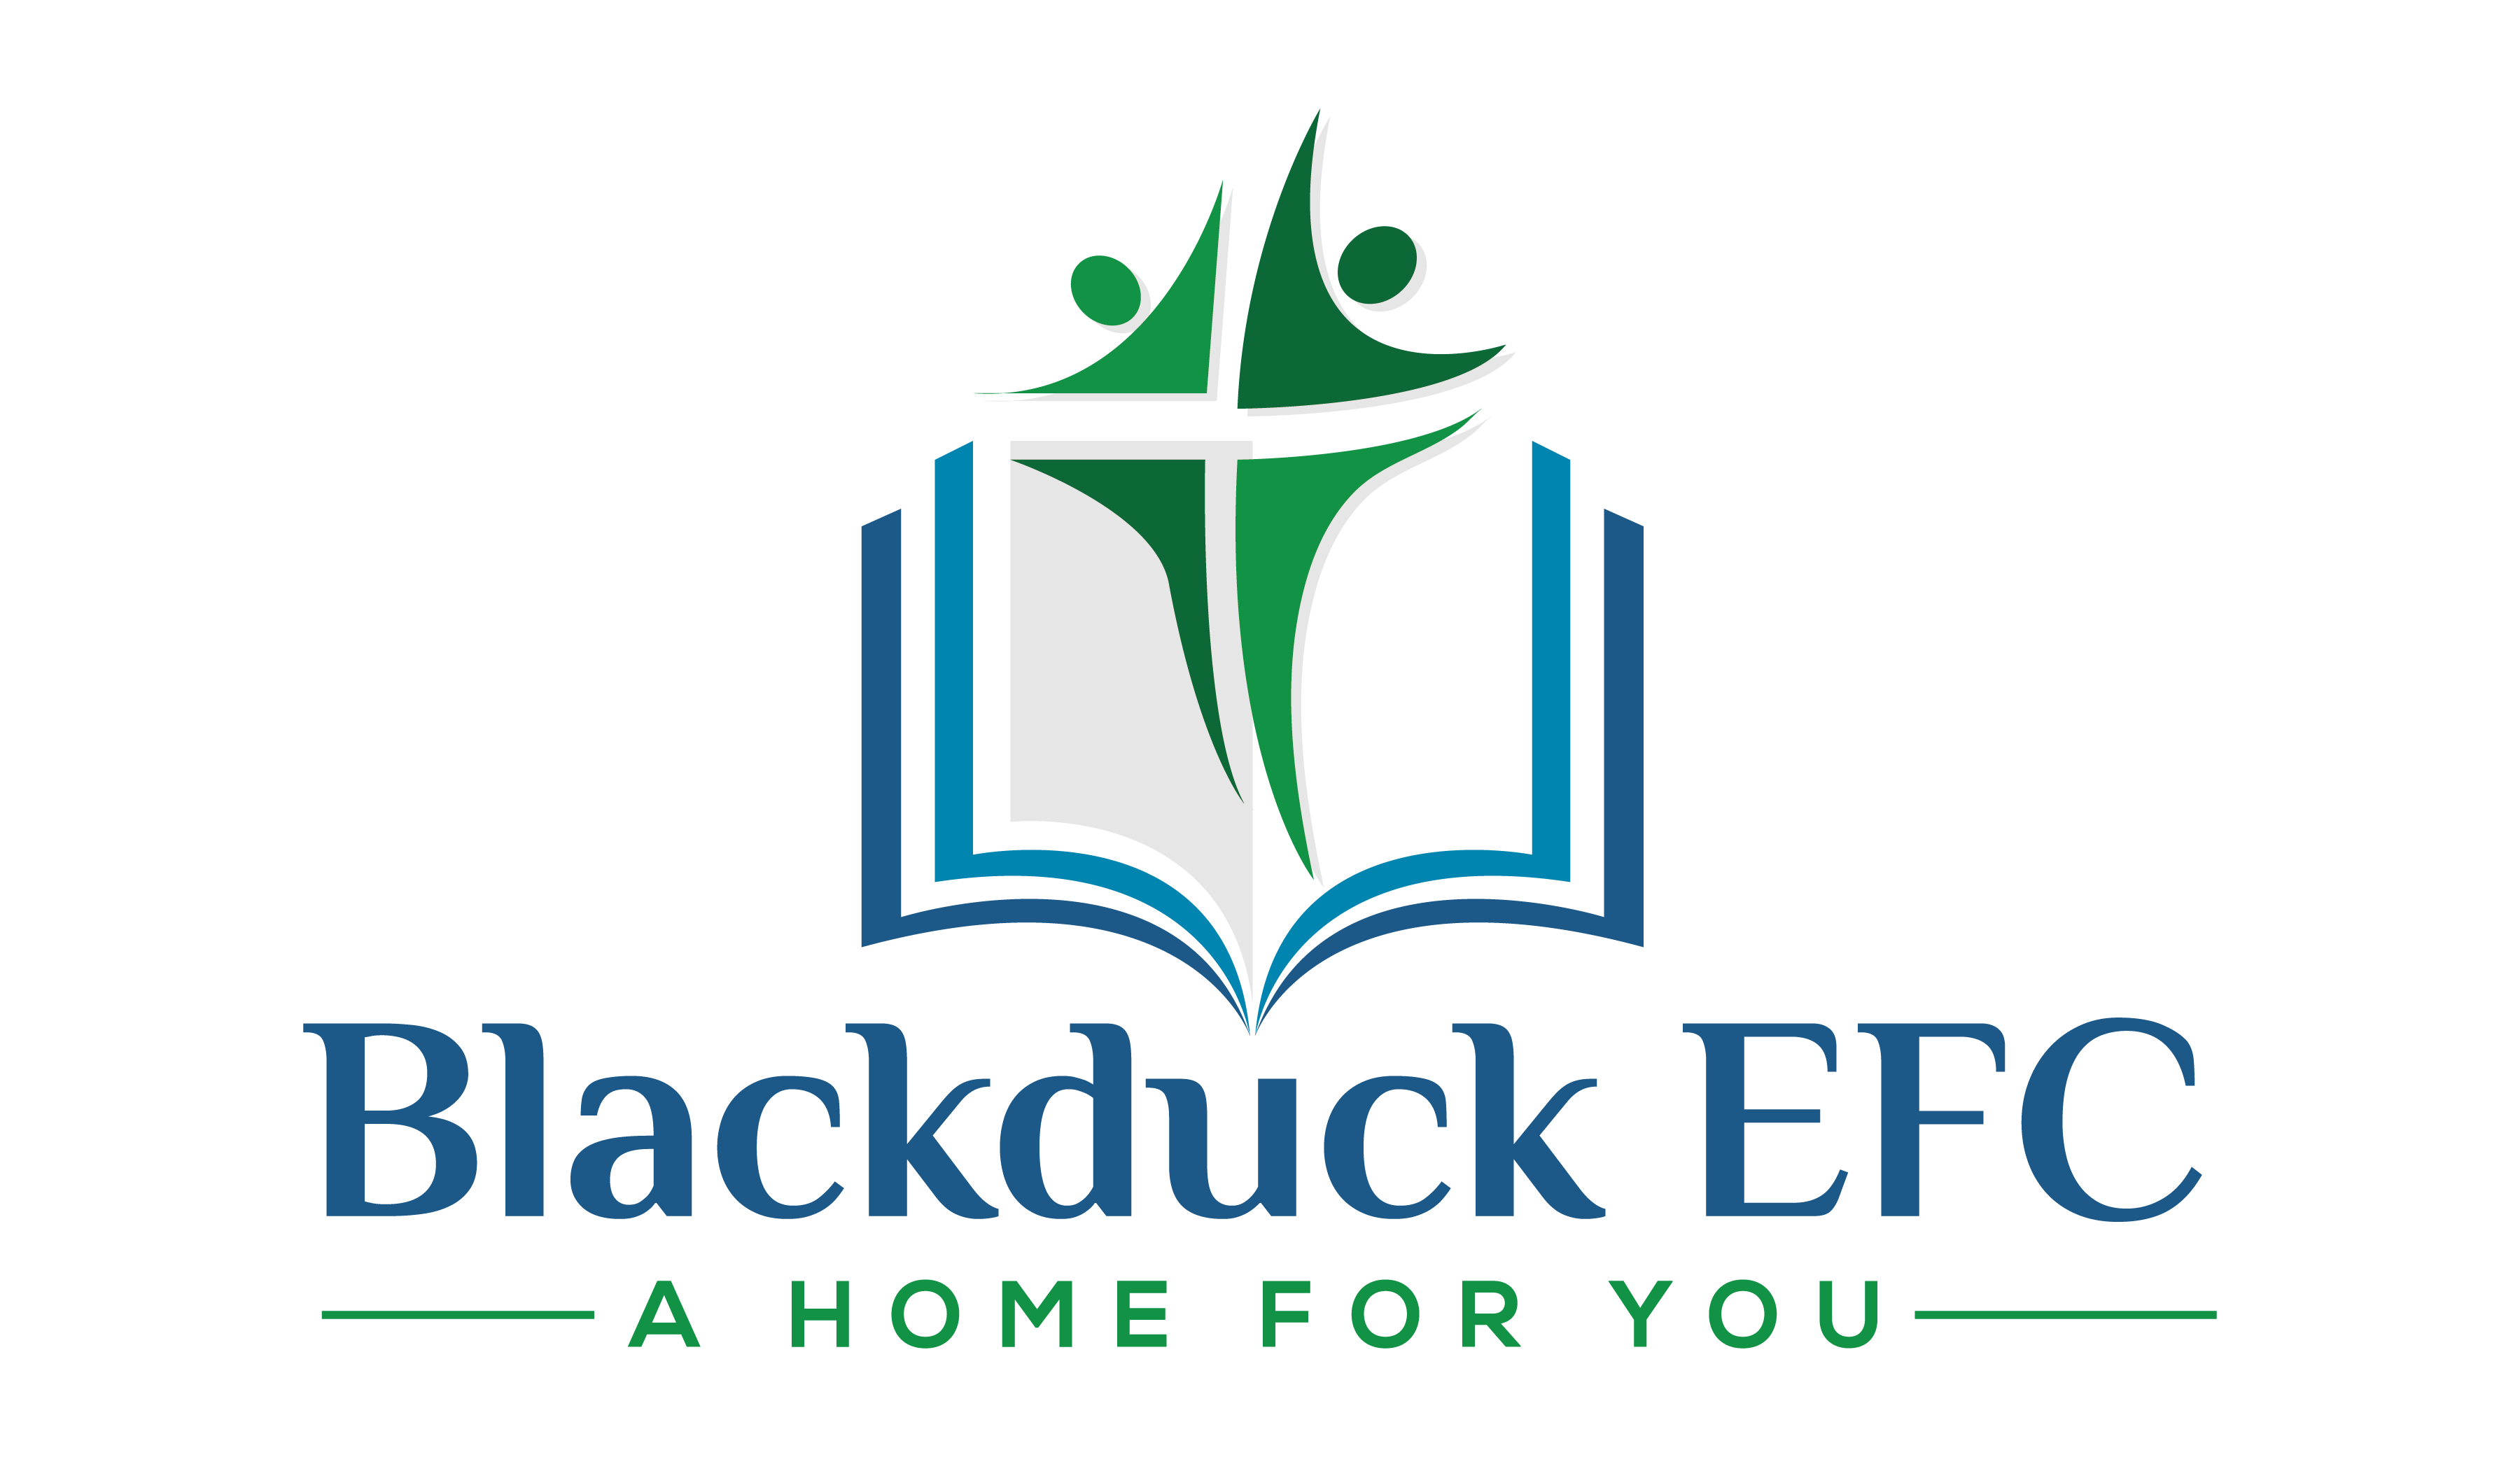 Blackduck Evangelical Free Church